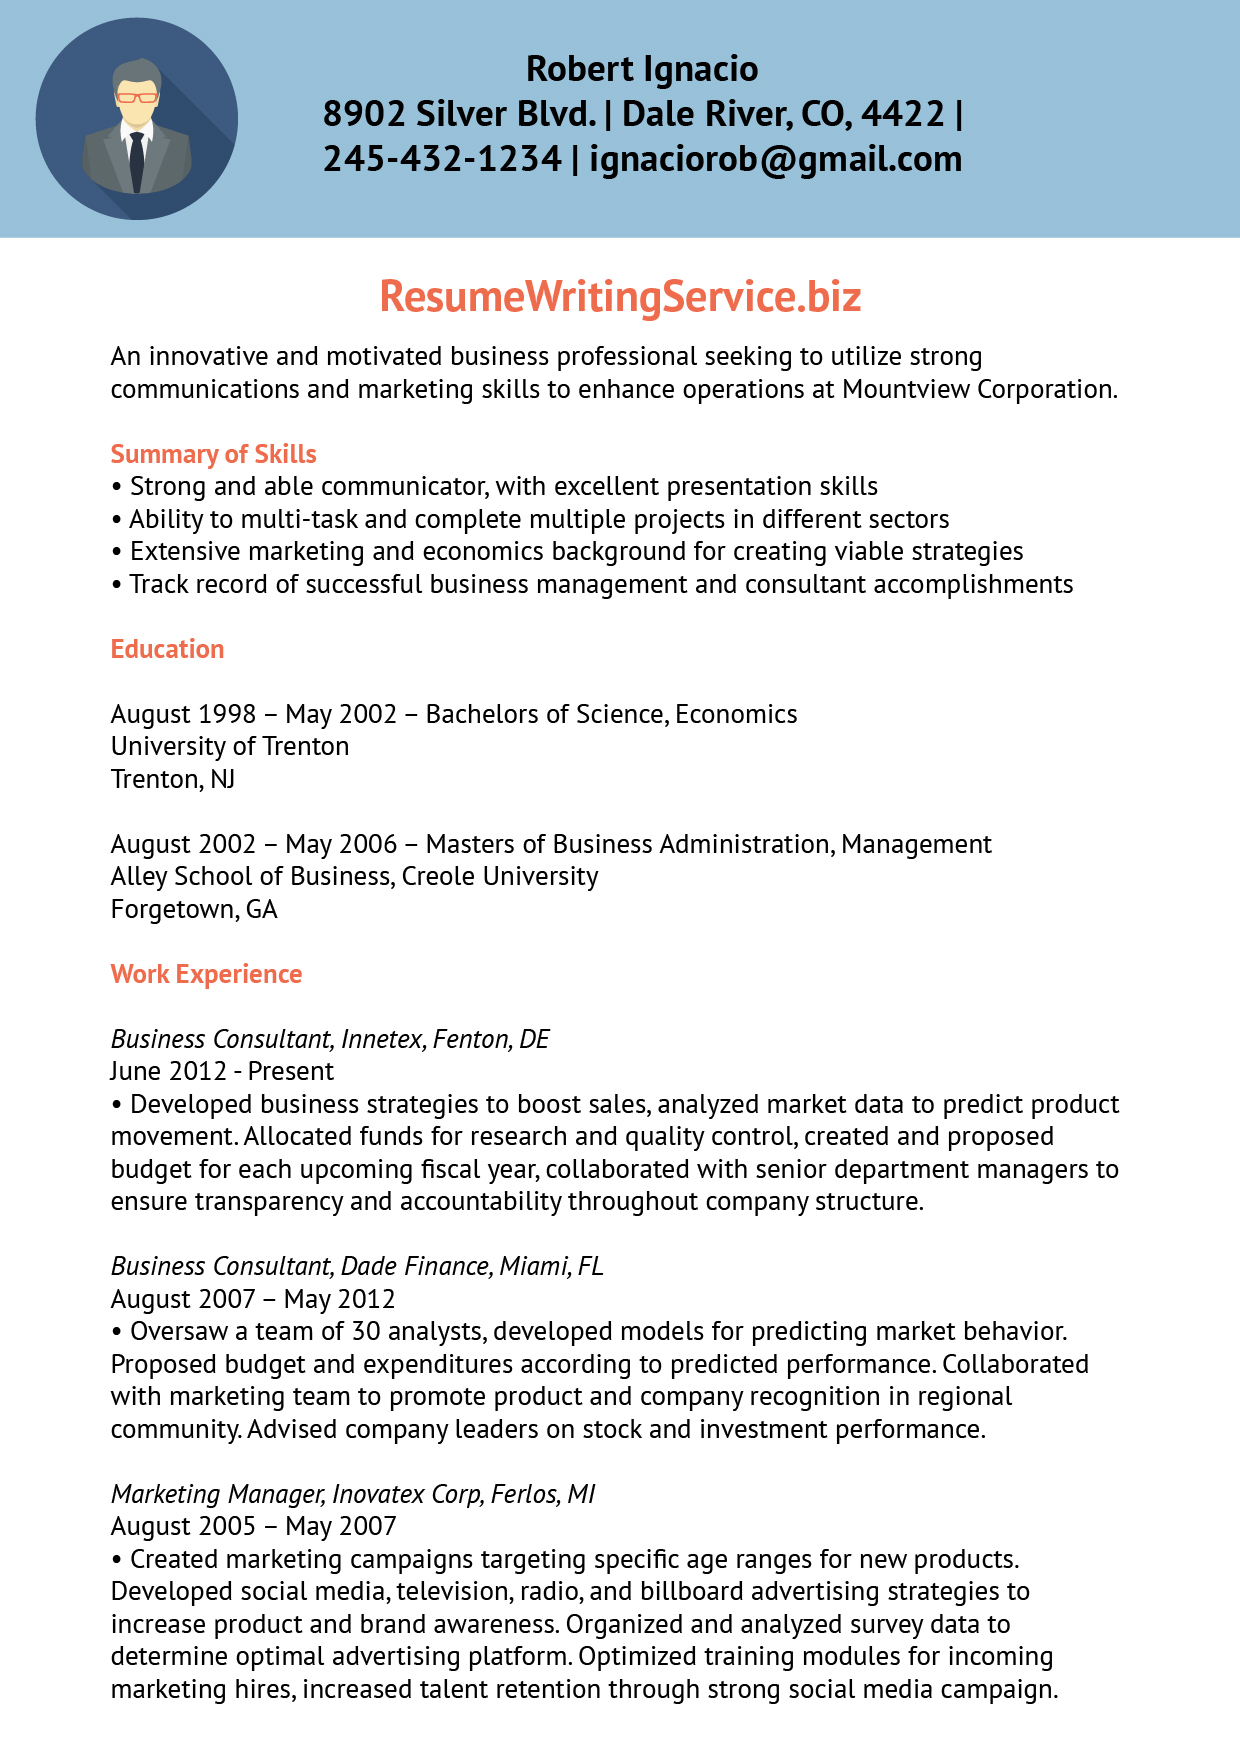 Business Consultant Resume Sample